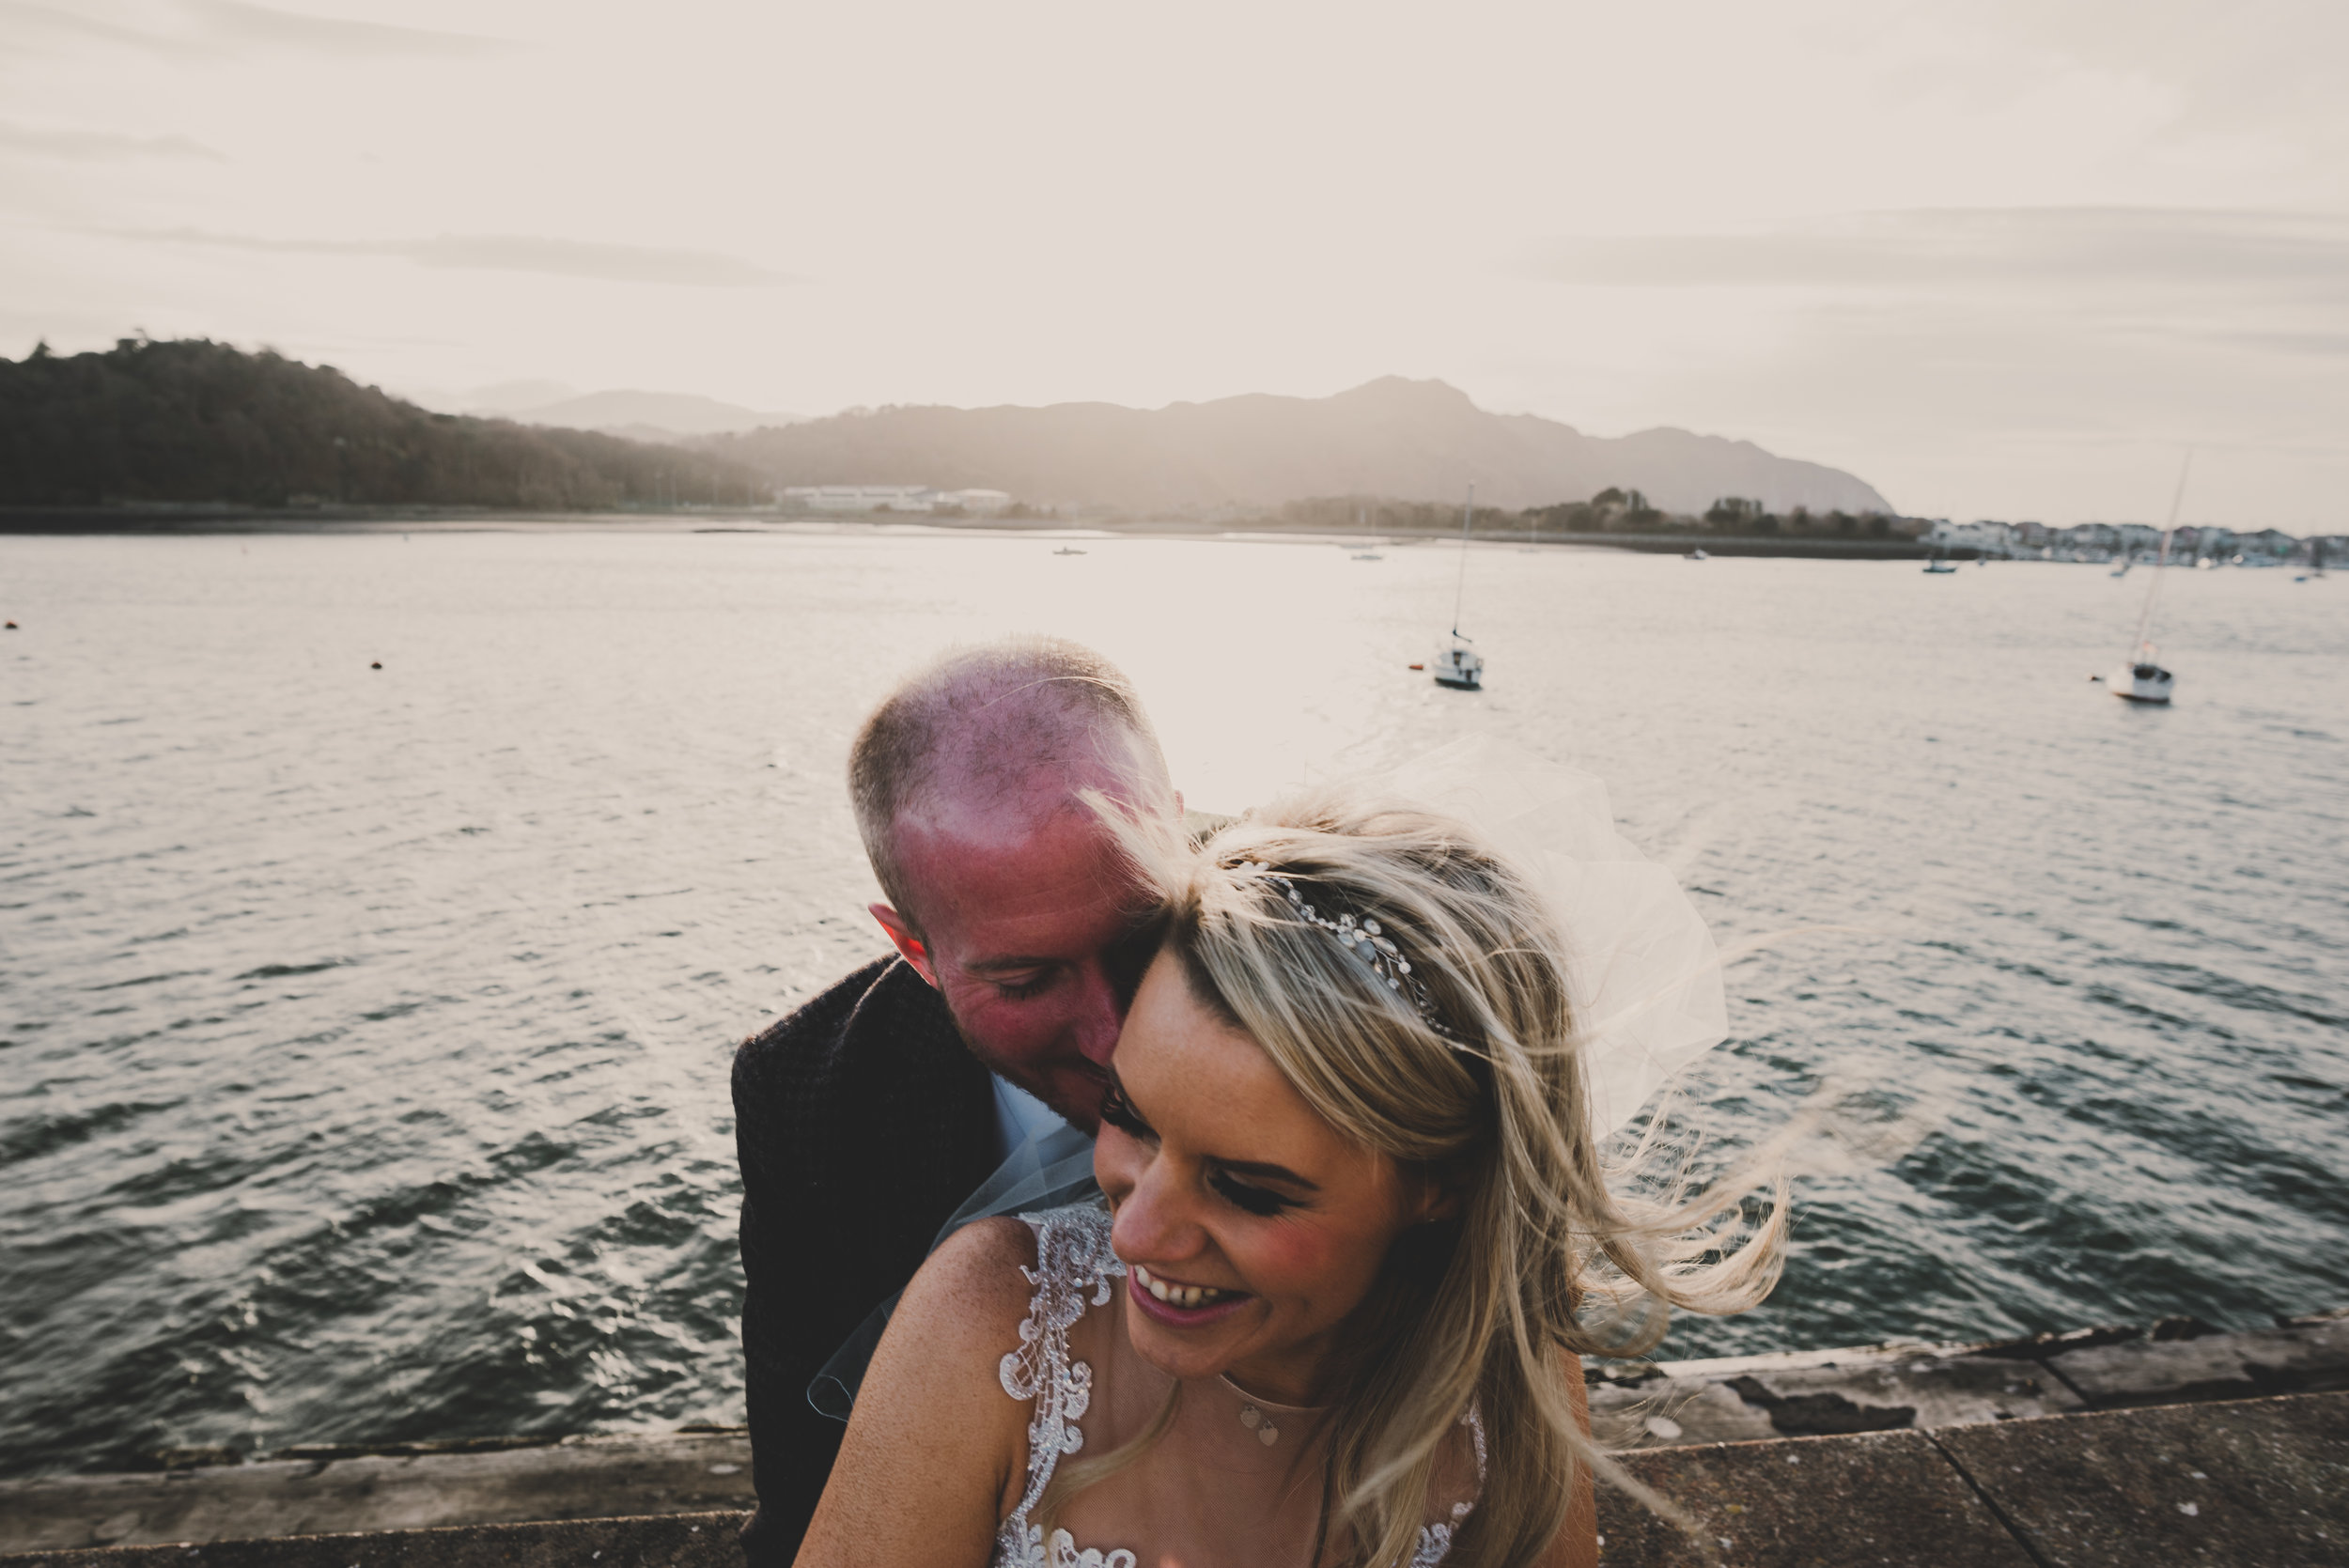 WEDDING: A Dreamy and romantic all welsh coastal wedding in Deganwy Wales